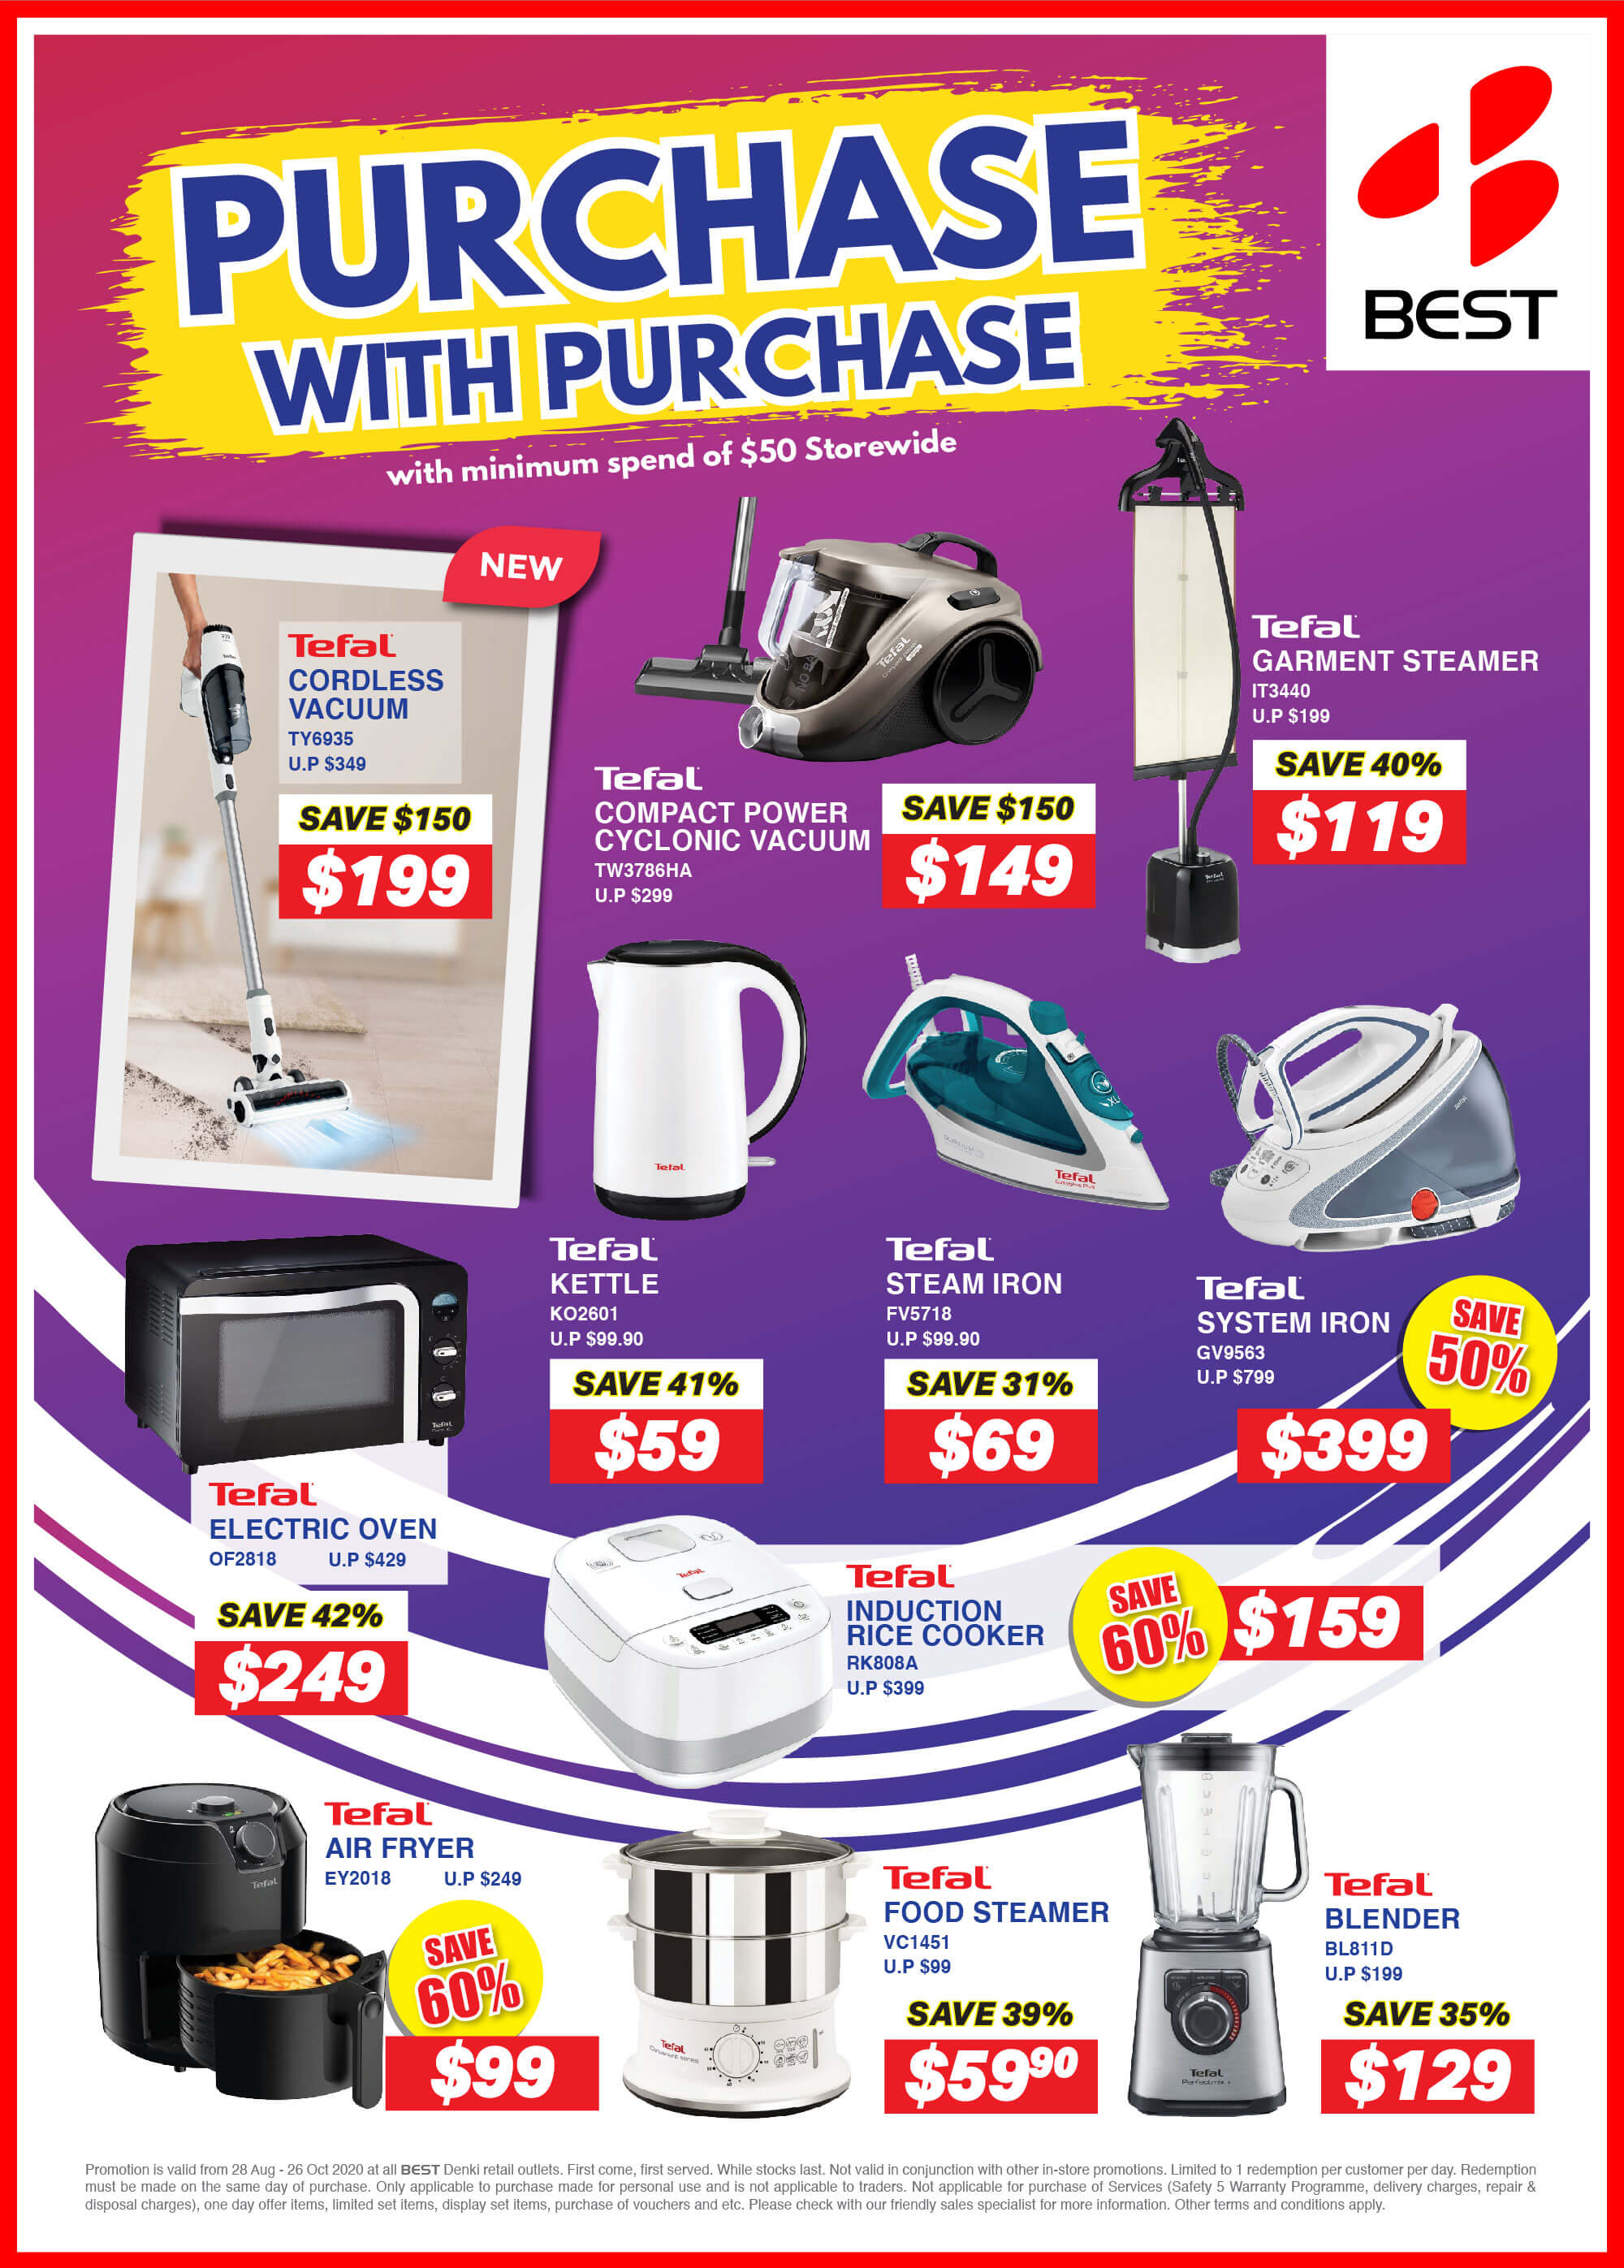 28 Aug to 26 Oct 2020: Best Denki Purchase with Purchase Promotion